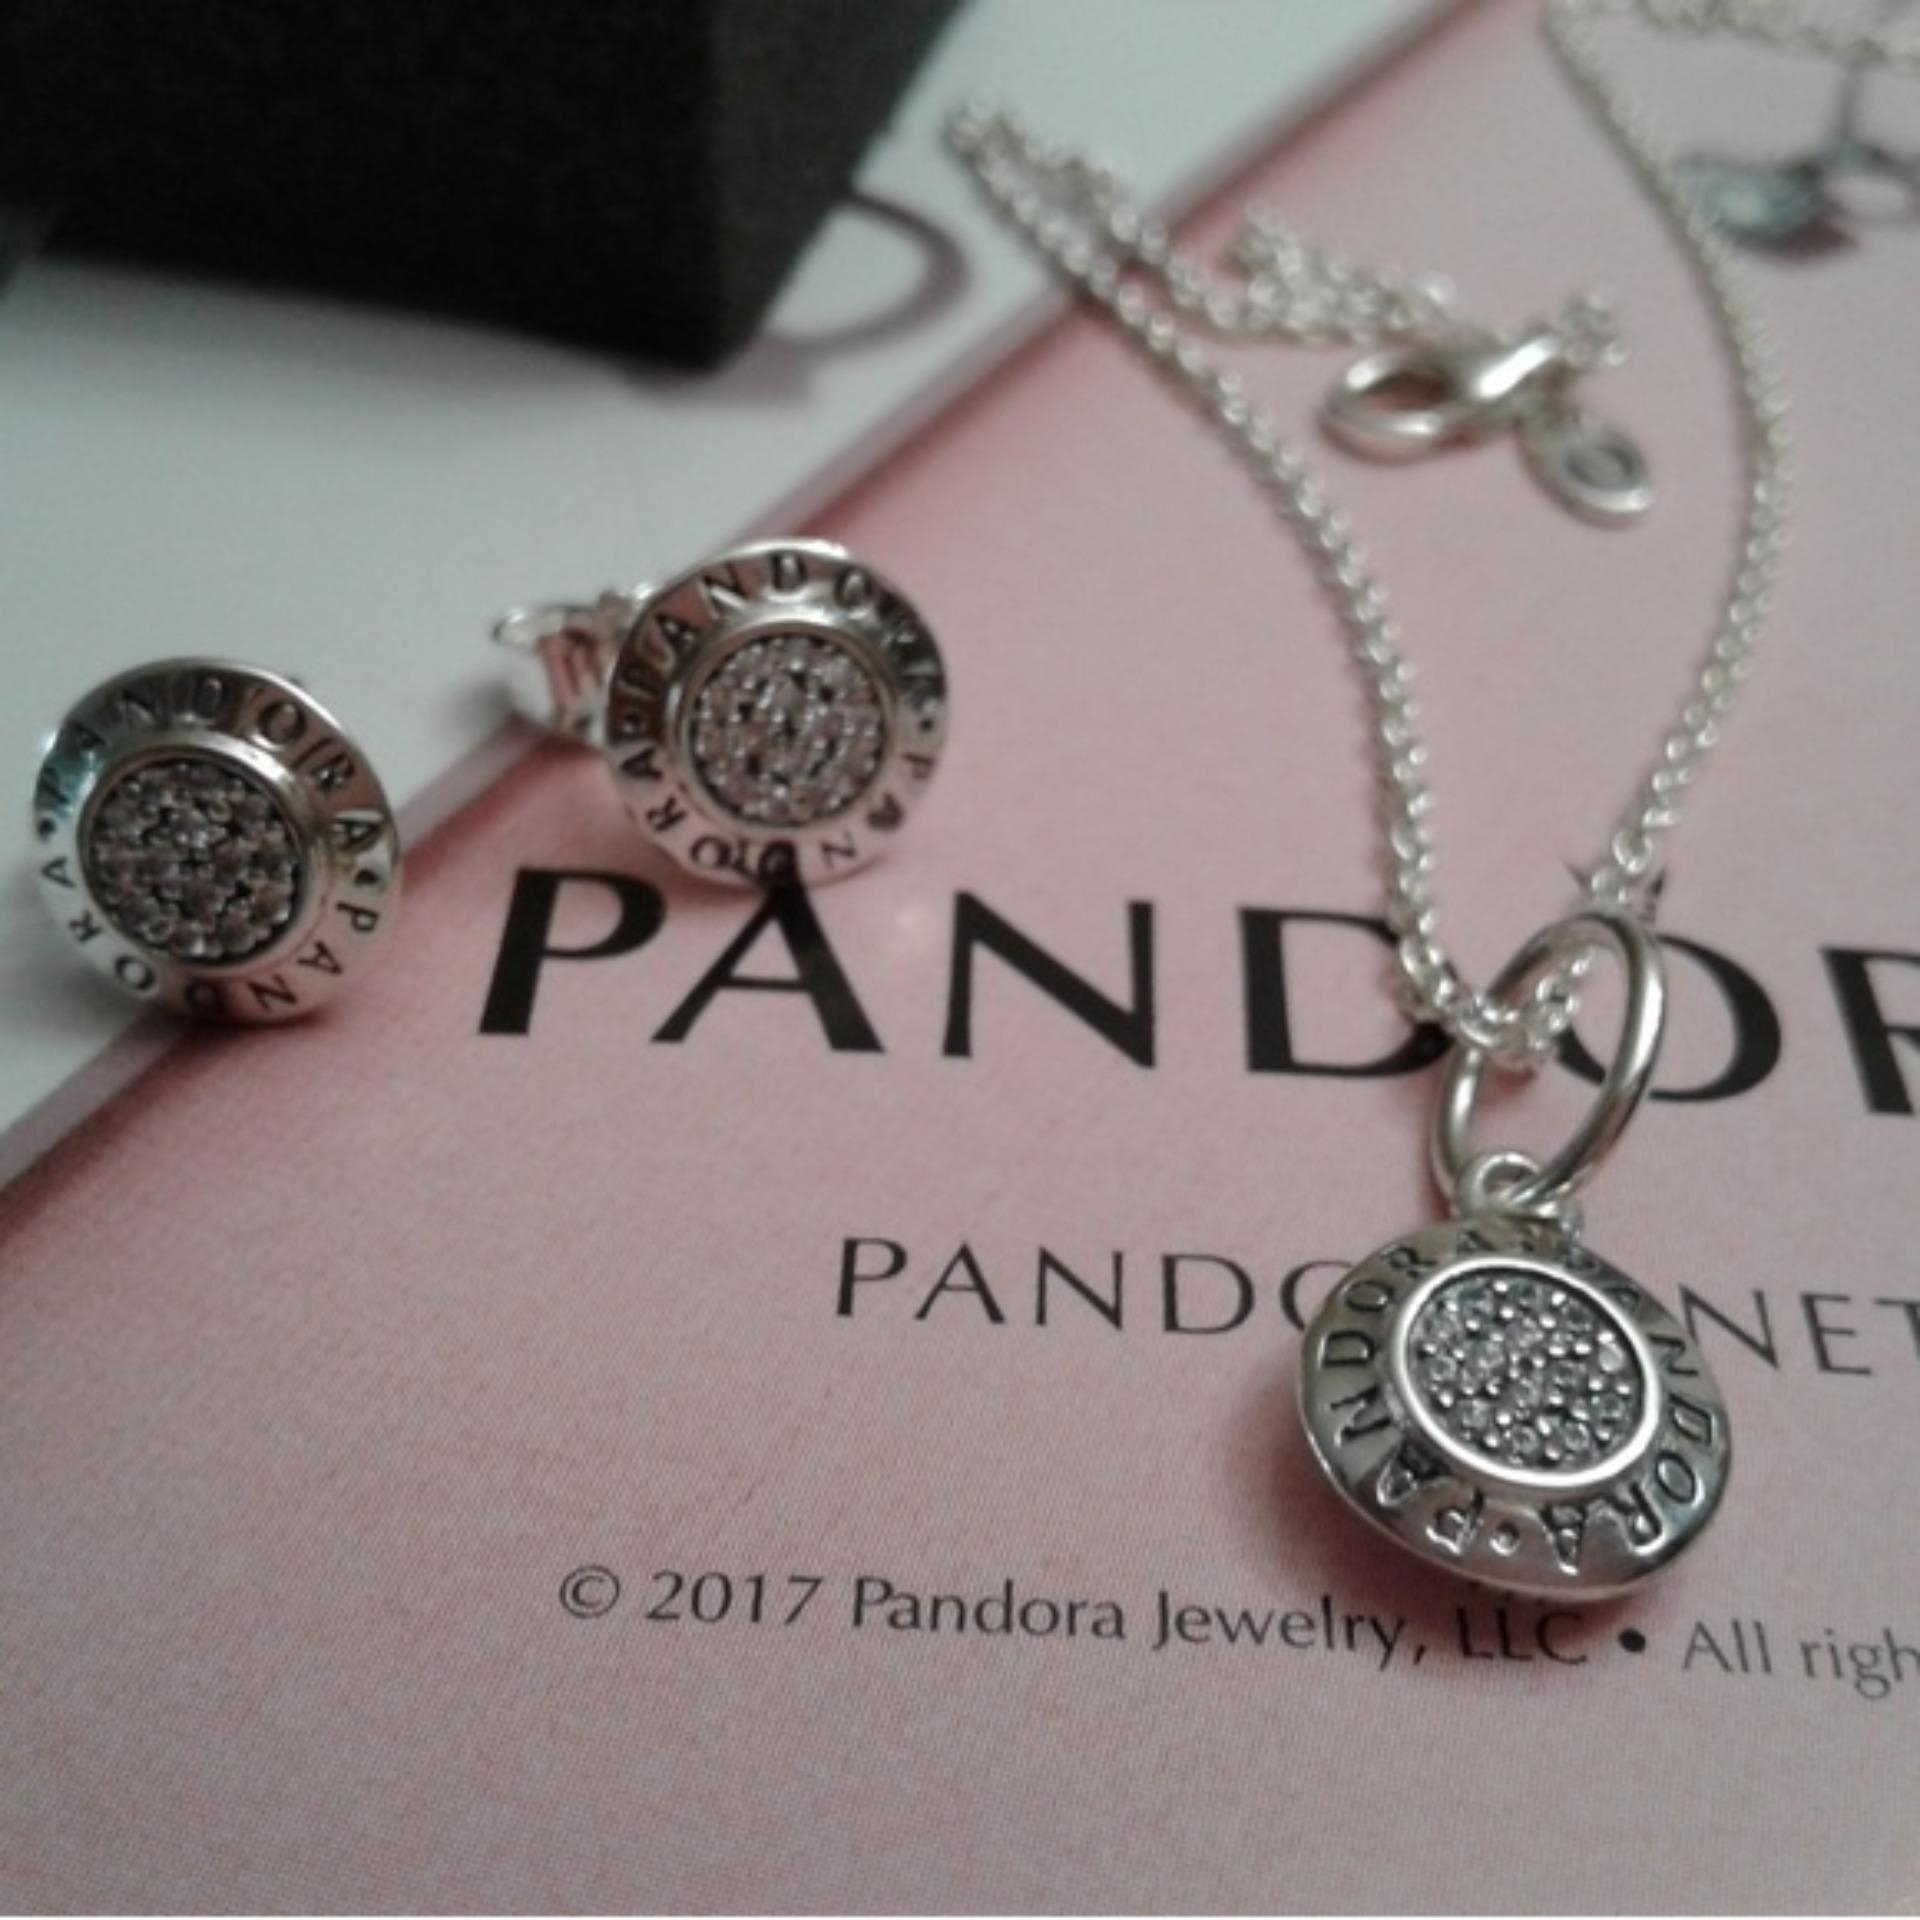 Pandora Necklace And Earrings Set Regarding Latest Pandora Moments Small O Pendant Necklaces (View 19 of 25)